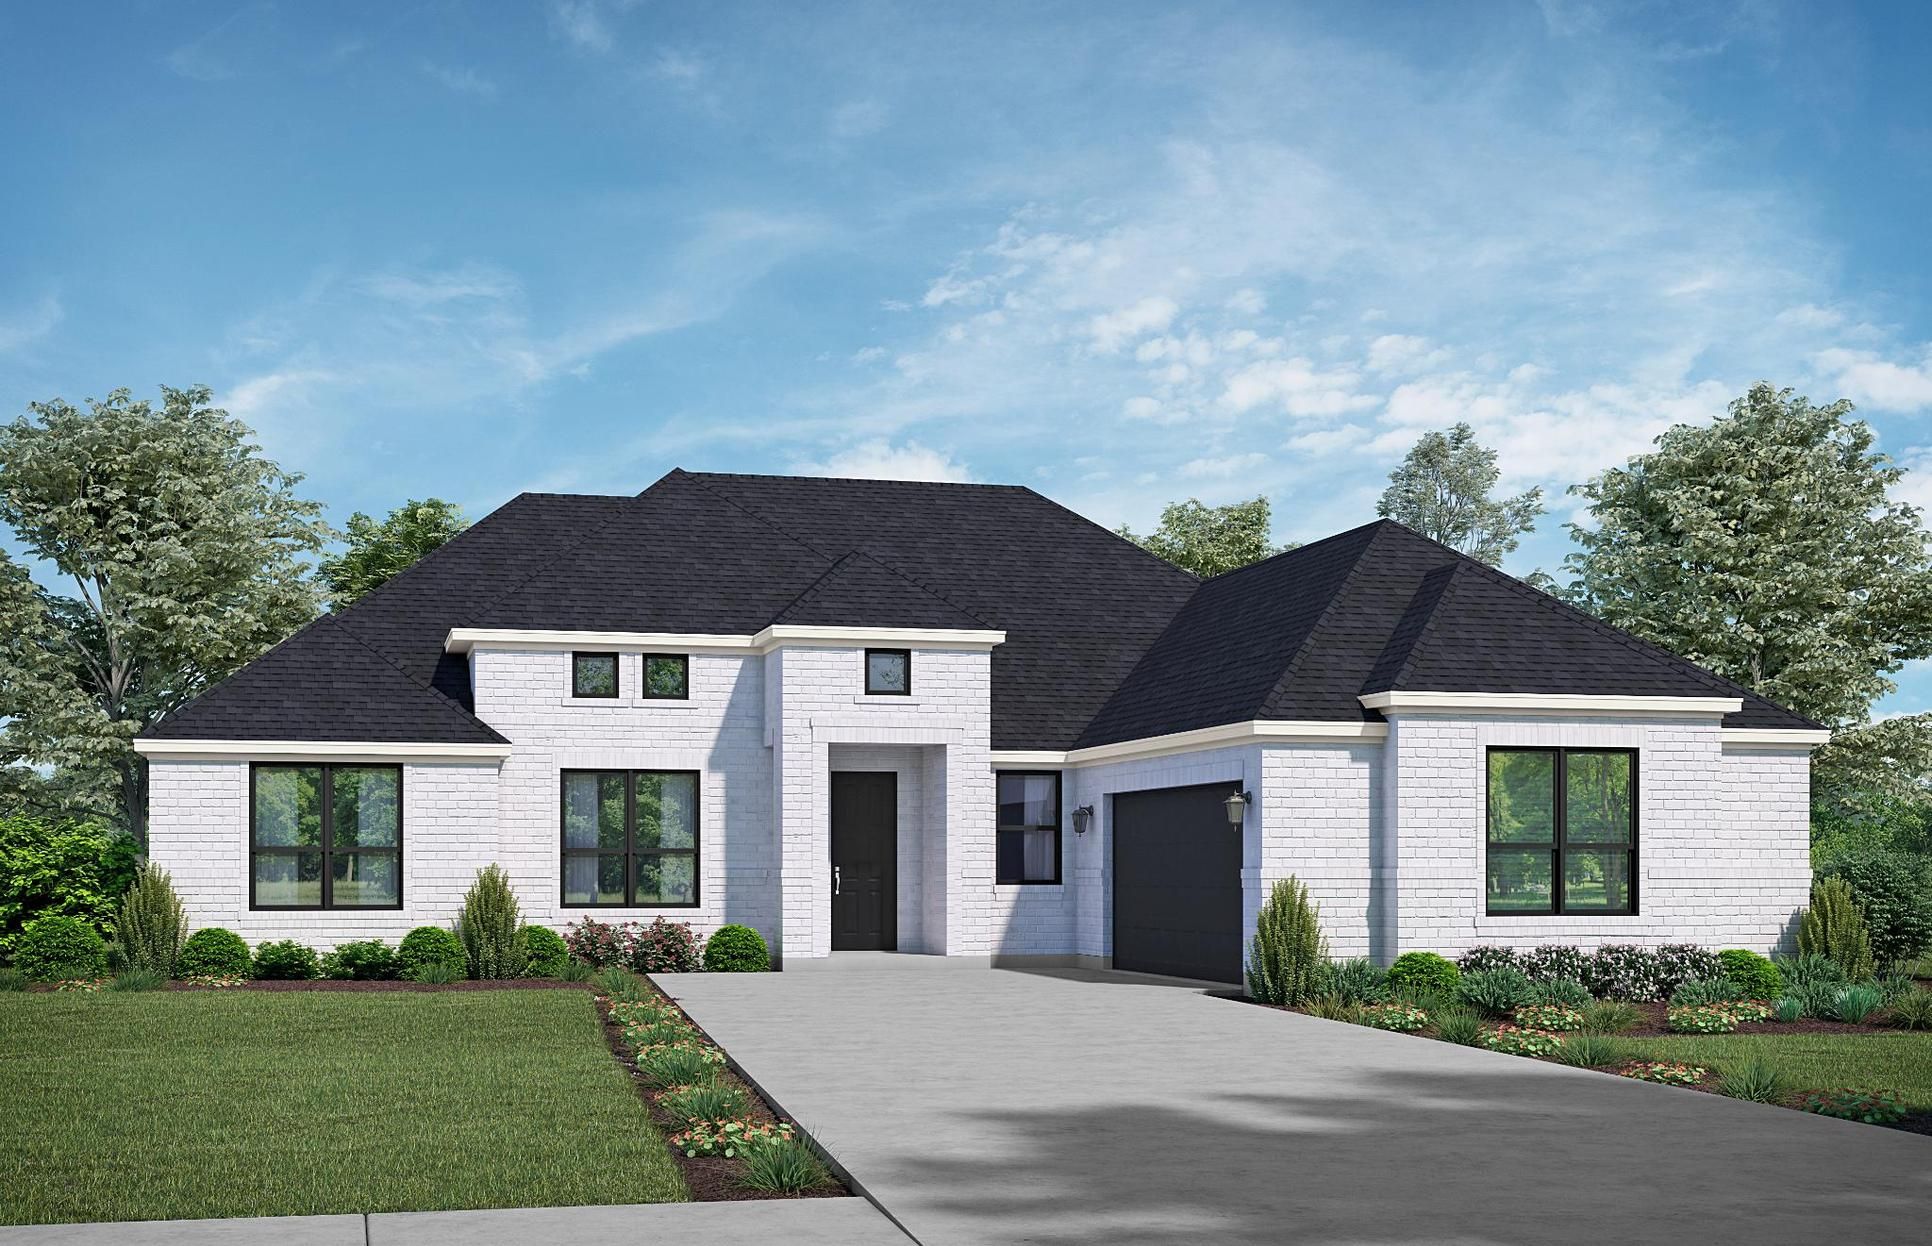 The Lodge - Elevation A. Images are artist renderings and will differ from the actual home built.:Elevation A